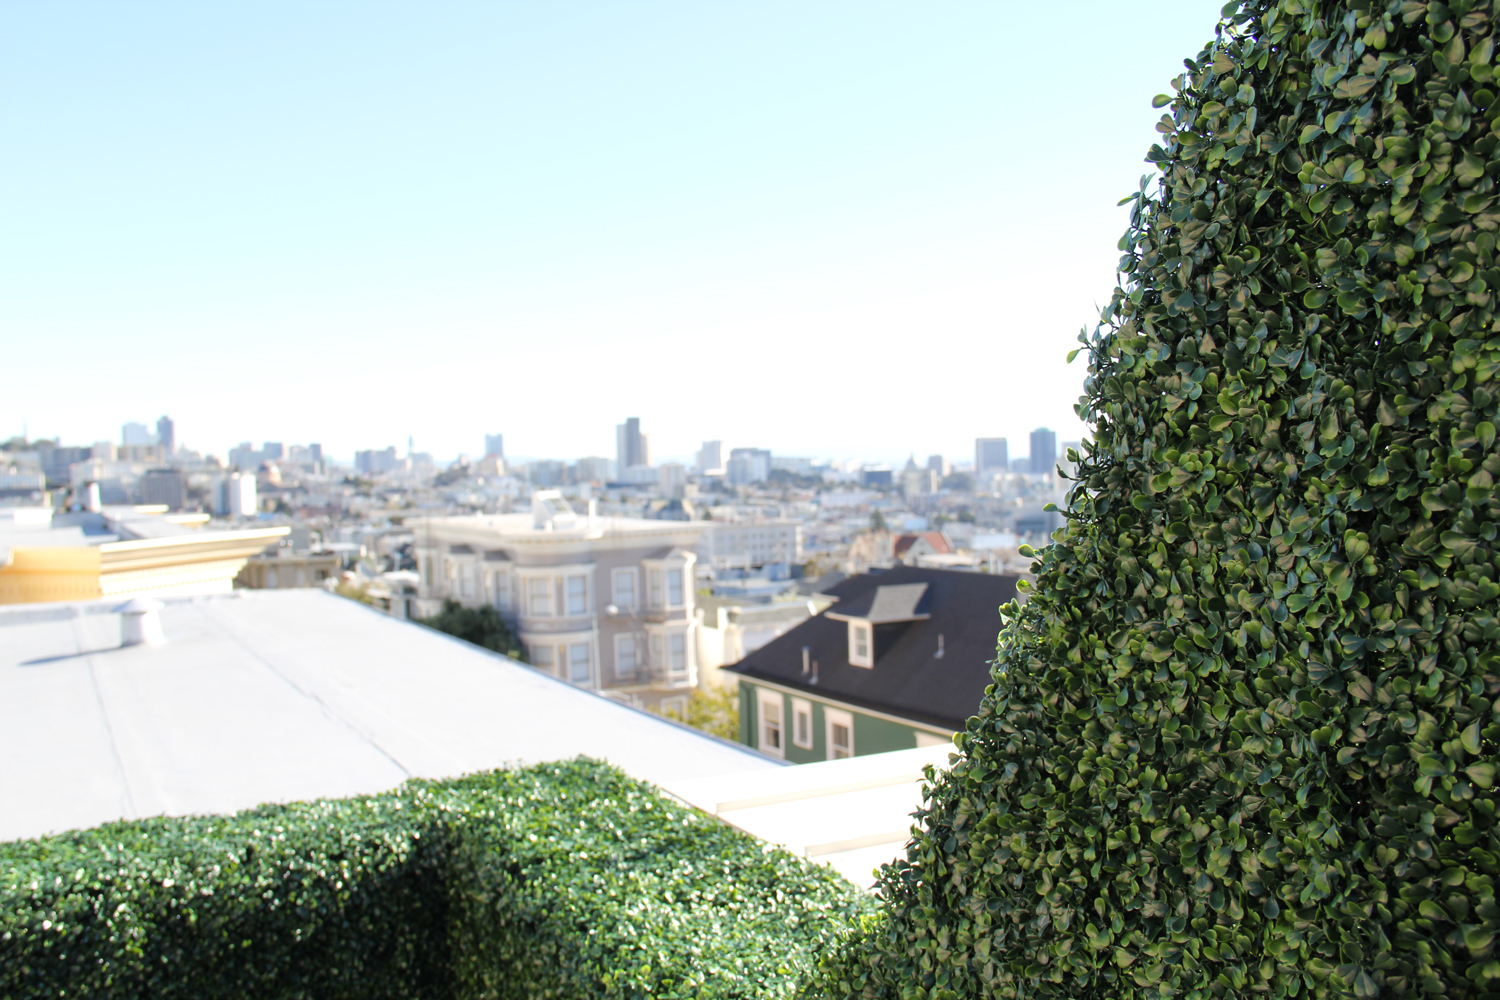 Rooftop hedge panel in San Francisco. We custom created a curve so the hedge did not impede the view of downtown San Francisco.